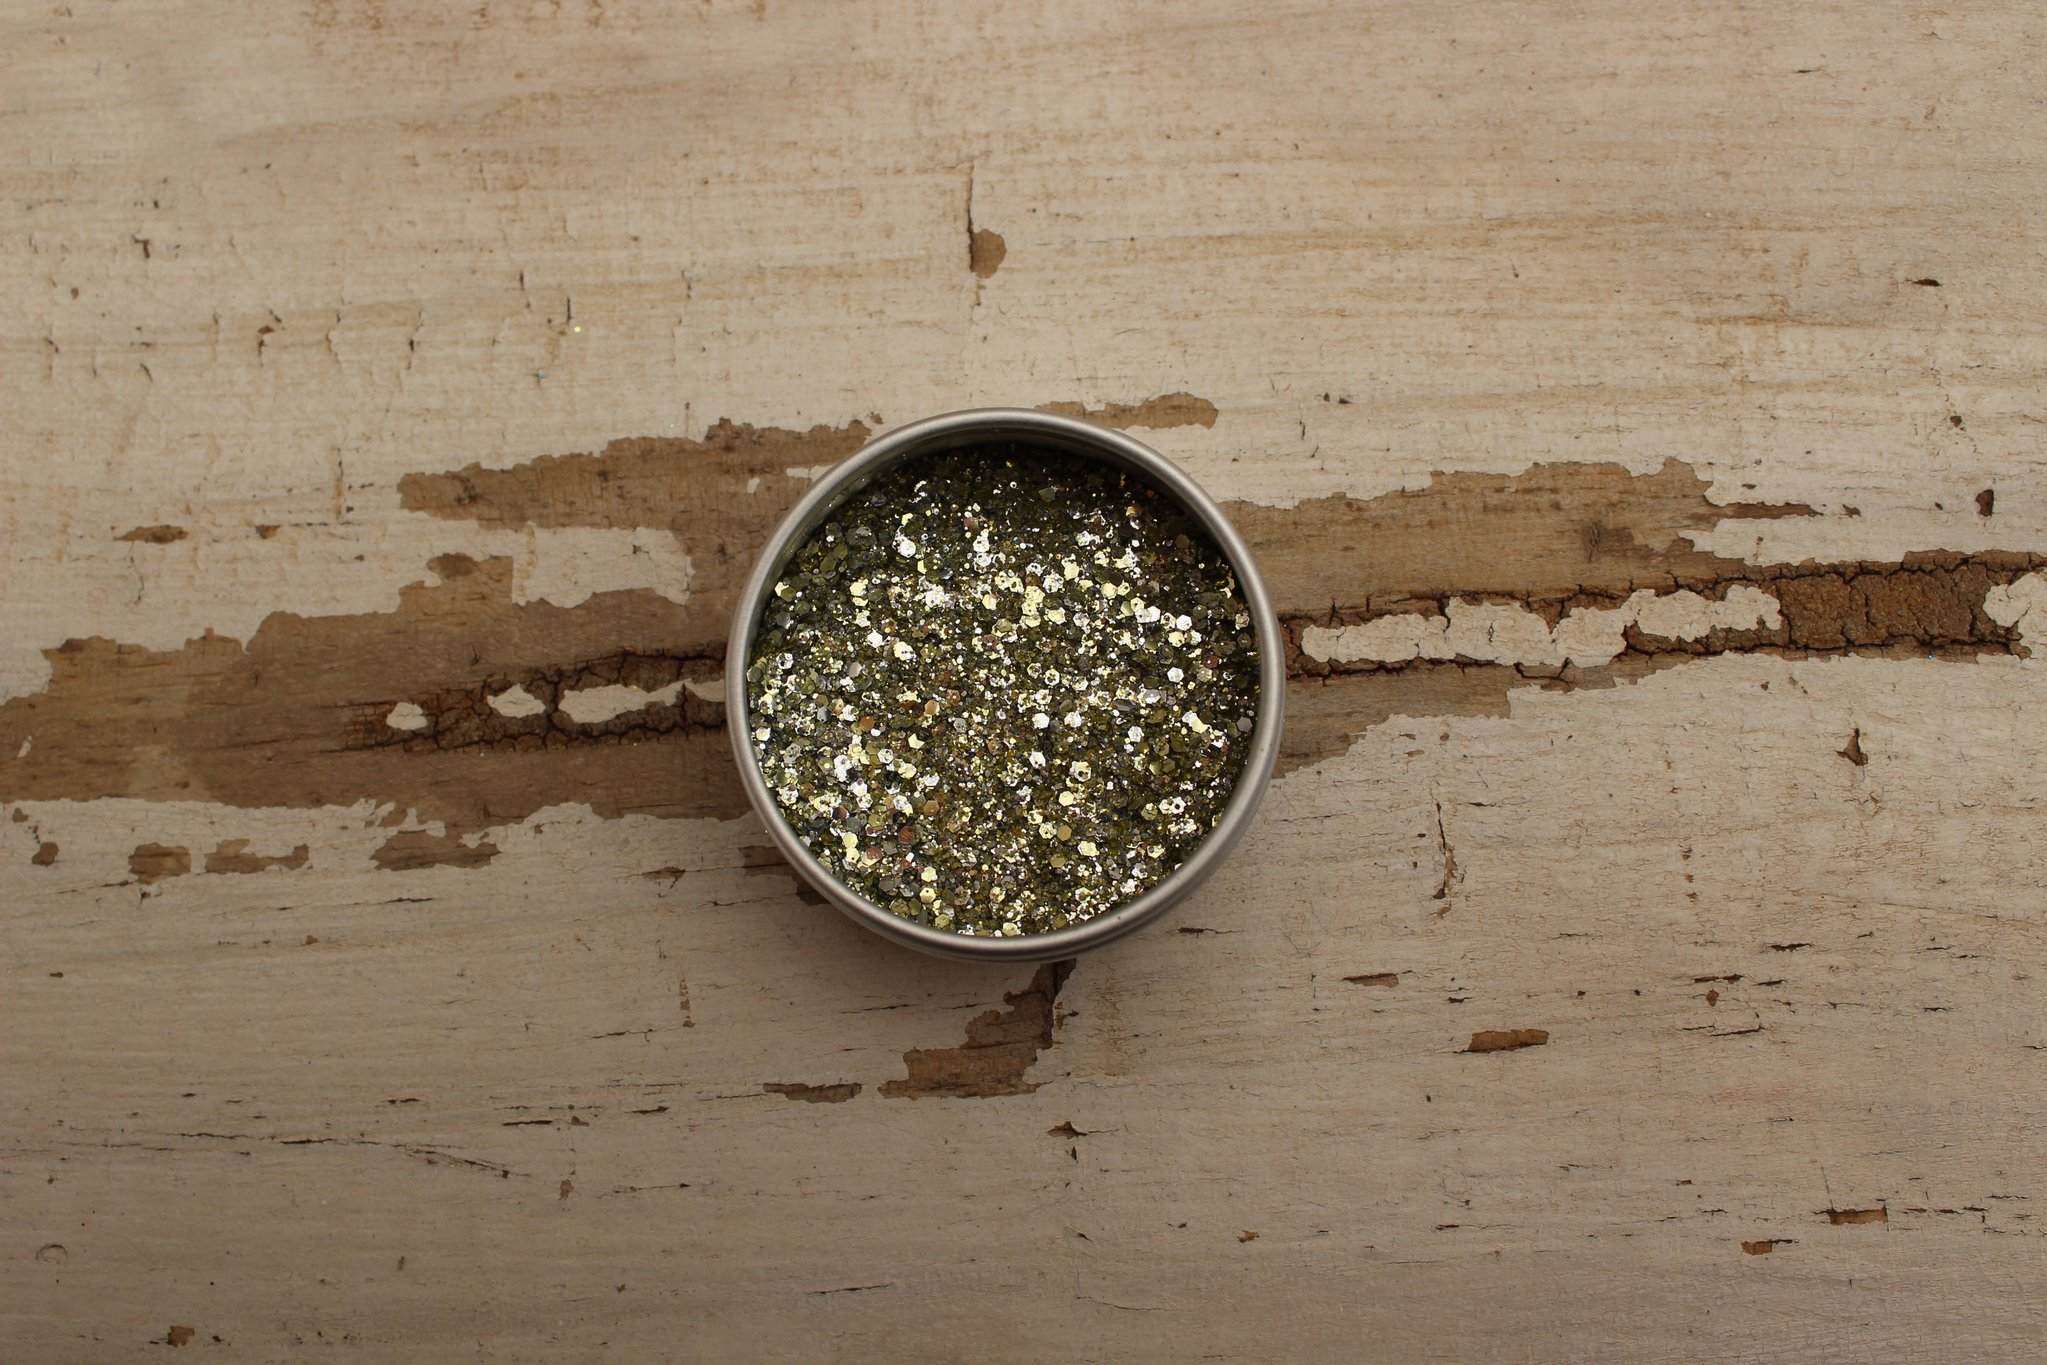 Glitter_Fairy_Biodegradable_Glitter_Blend_Precious_Metals_1024x1024@2x